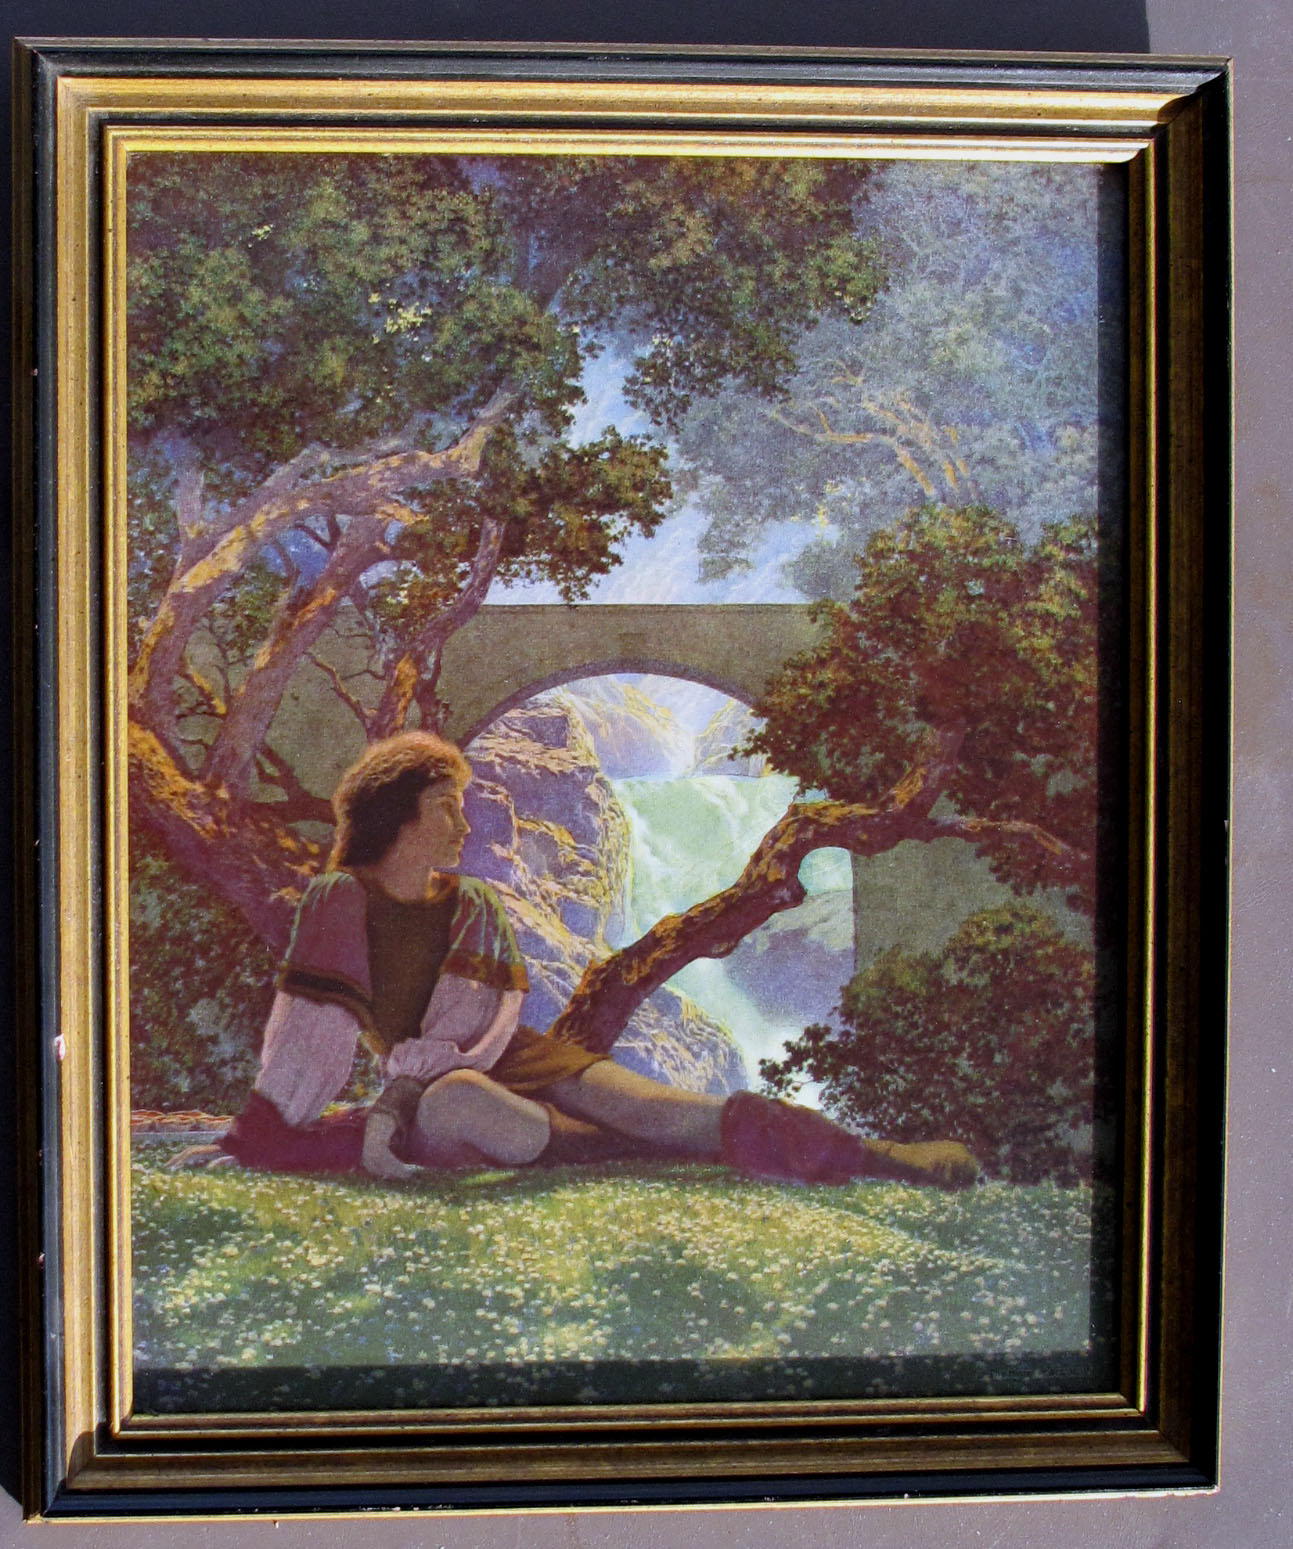 Maxfield parrish the prince 1925 house of art print for for Art print for sale